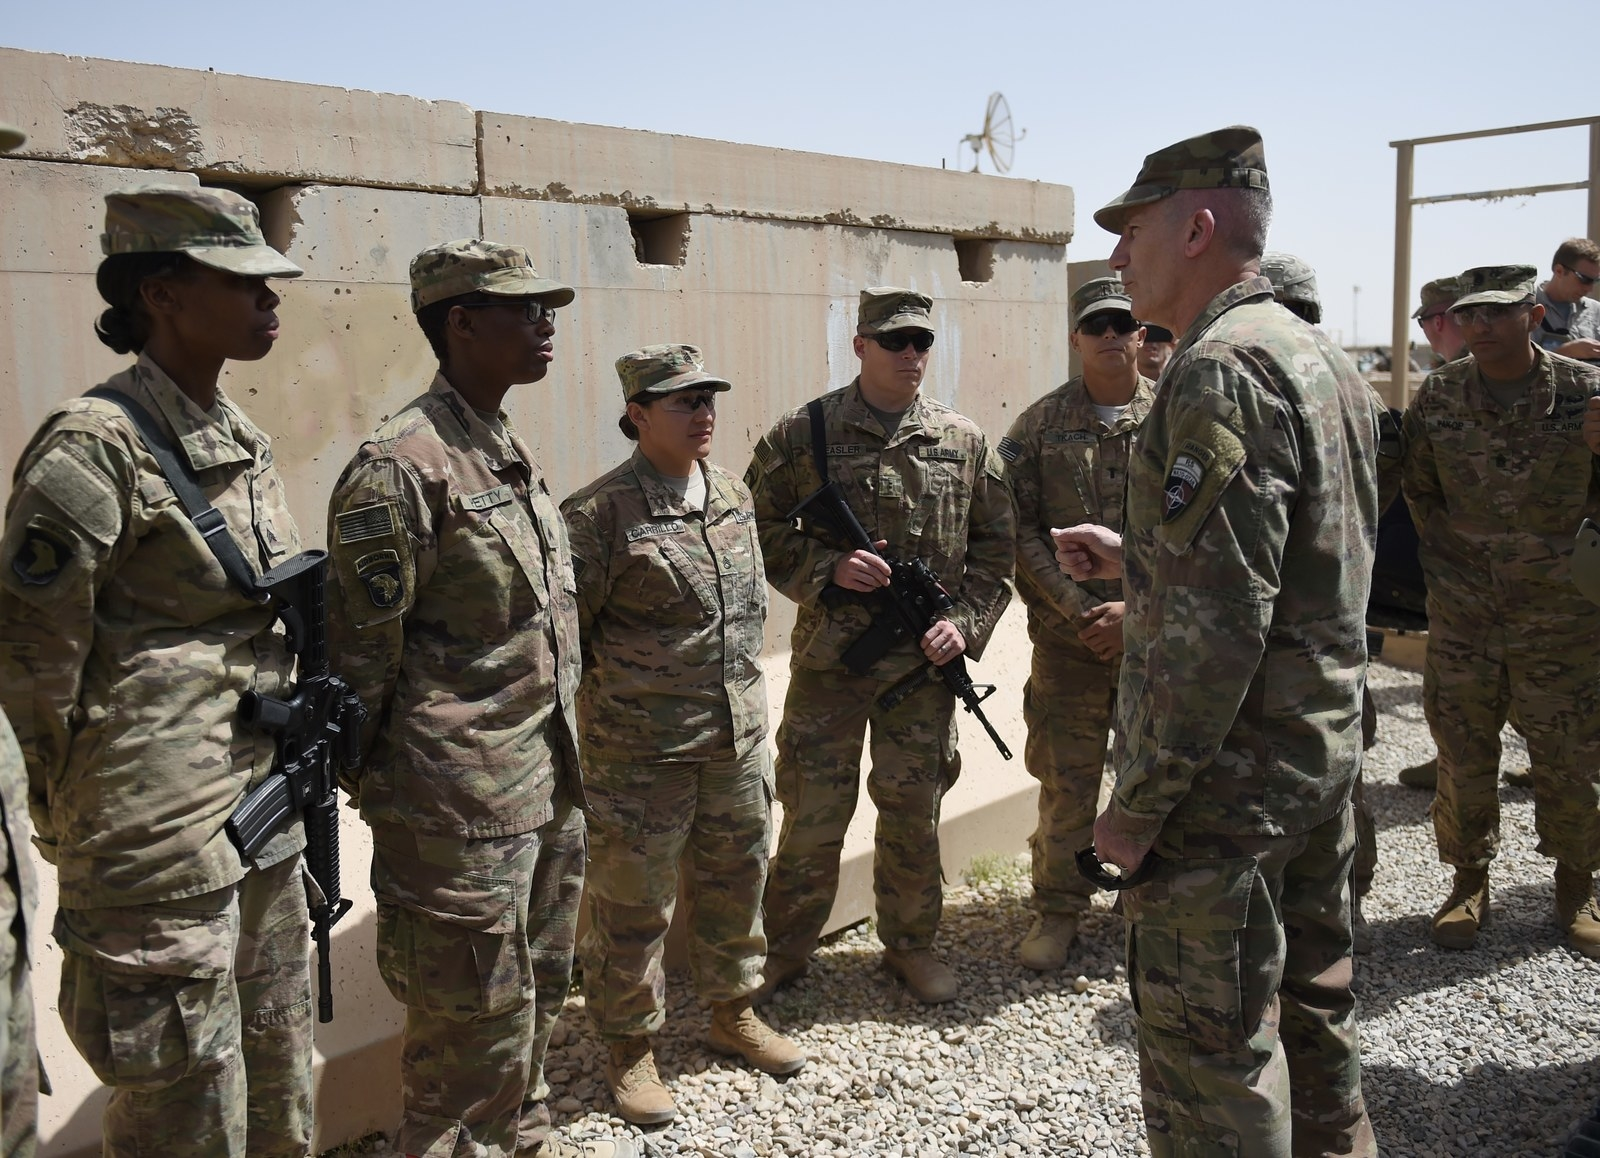 But Trump was reportedly reluctant to go along with the request and generally unhappy with the options available. According to NBC News, the president went as far as to call for Nicholson to be replaced, though no steps have yet been taken to make that a reality. Mattis meanwhile gave authority in June to add additional troops but opted instead to wait for the review to be completed.